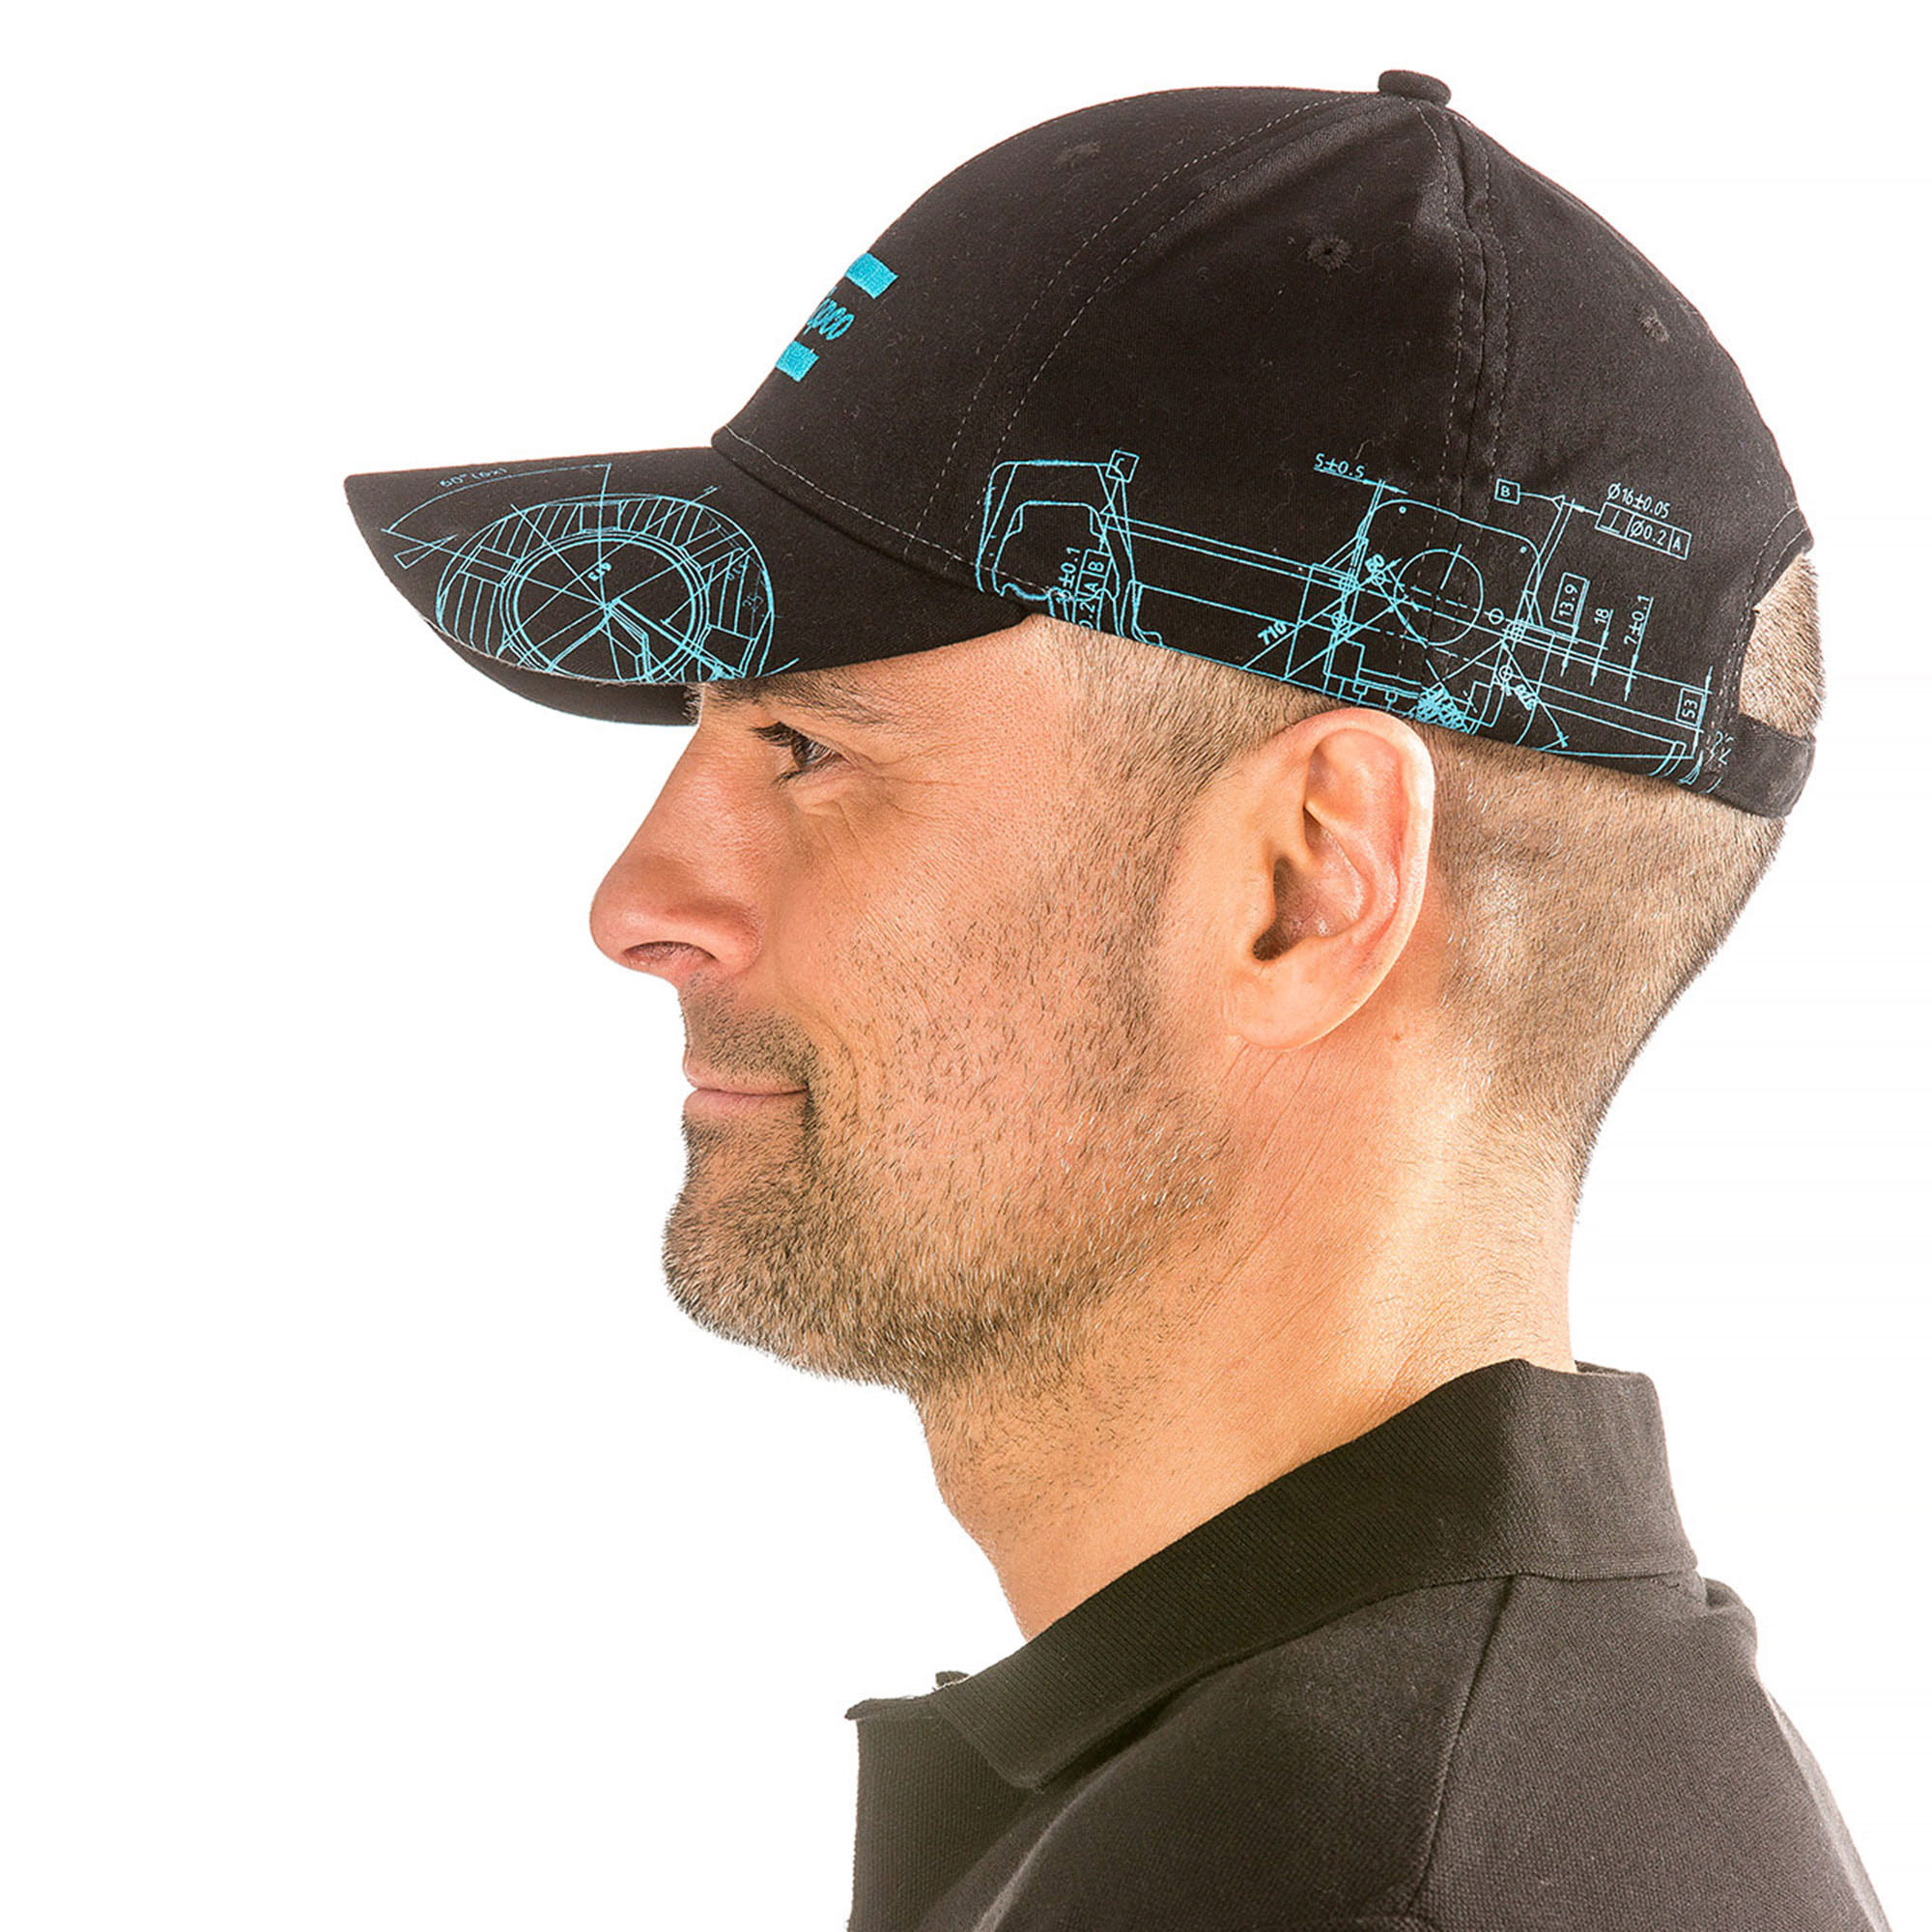 This cap has been developed to obtain the best fitting possible. The fabric is made of Cotton and Spandex which makes the Cap slightly elastic. An adjustable metal buckle together with the elastic fabric makes the cap versatile. The cap has a precurved visor and six panels with air ventilation. The BluePrint pattern is based on Atlas Copco´s key innovations. By merging original blueprints from all business areas, a unique graphic pattern has been created.